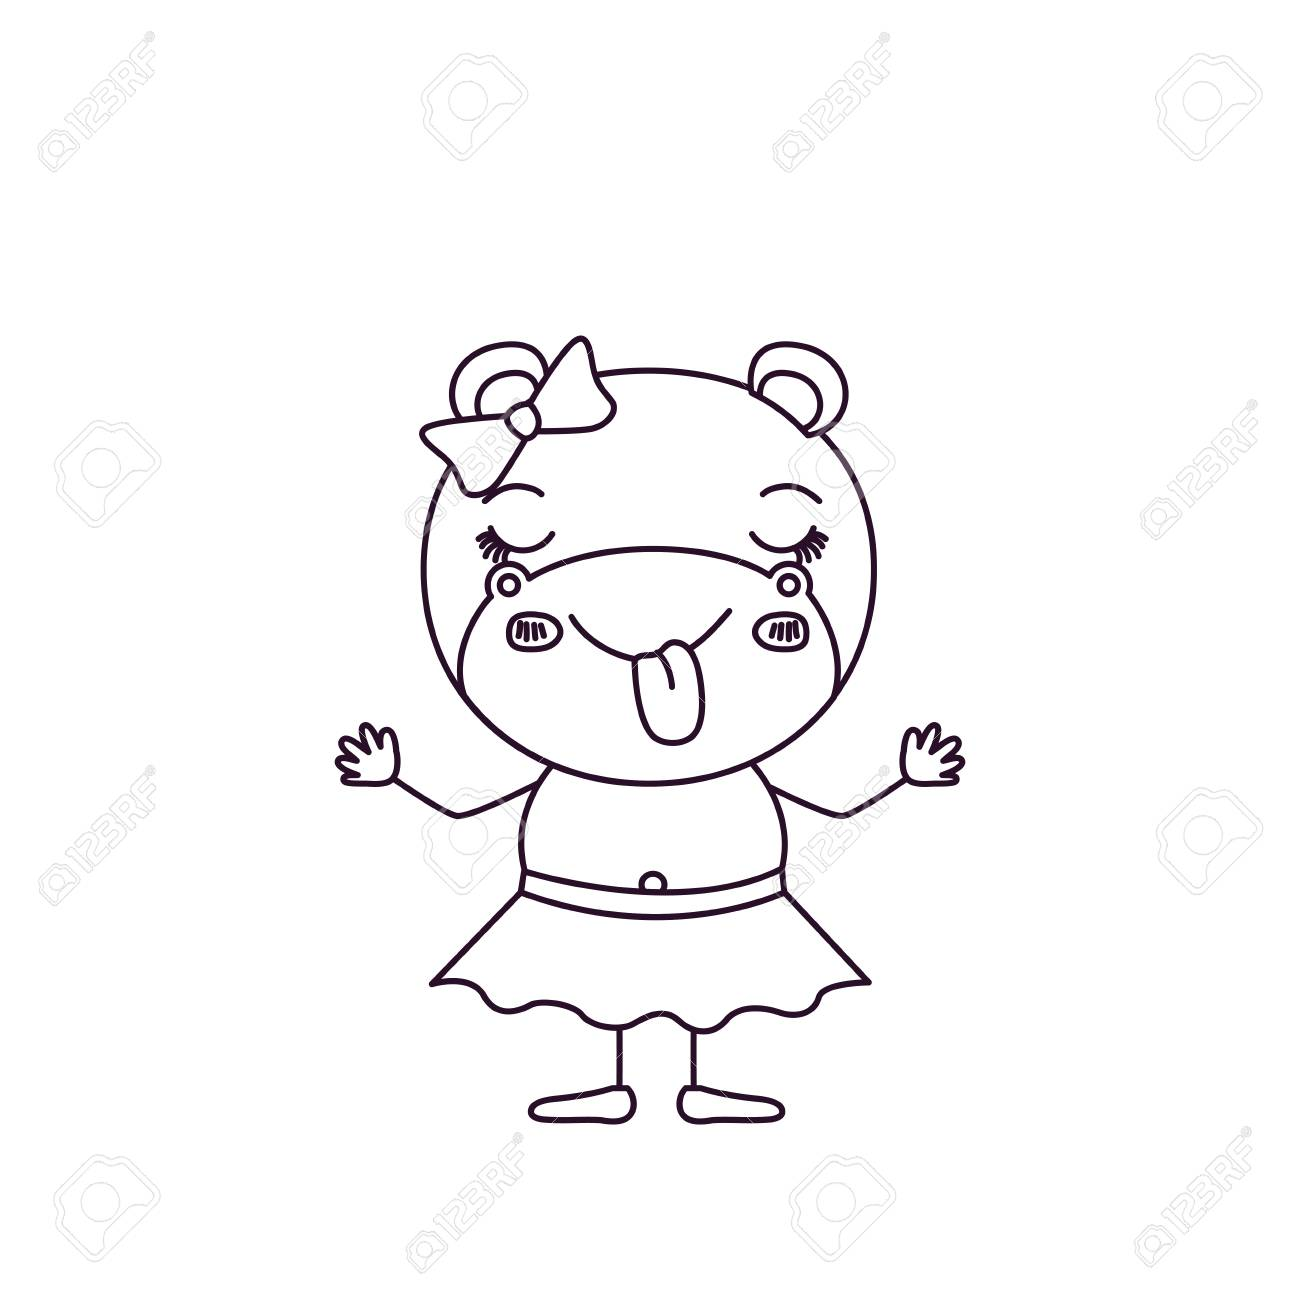 1300x1300 Sketch Silhouette Caricature Of Female Hippo In Skirt With Bow